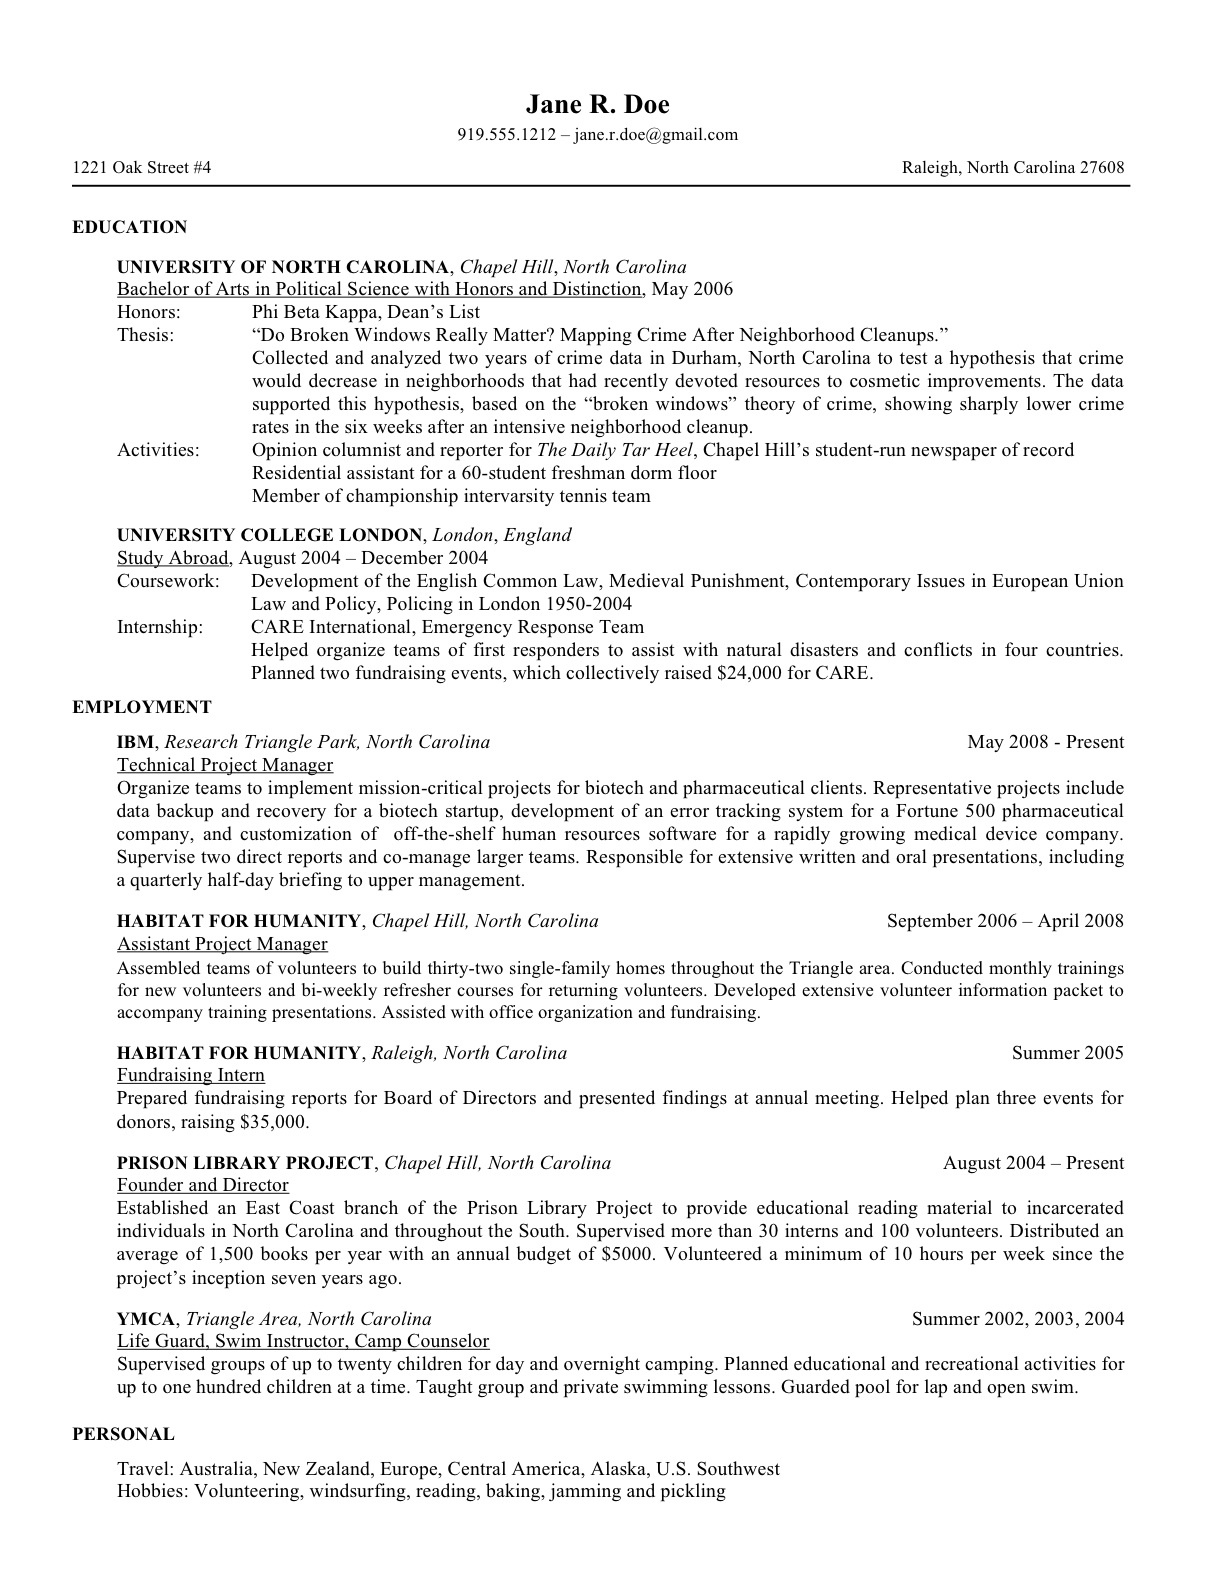 law school resume templates prepping your for of university at experience visualizer Resume Resume School Experience